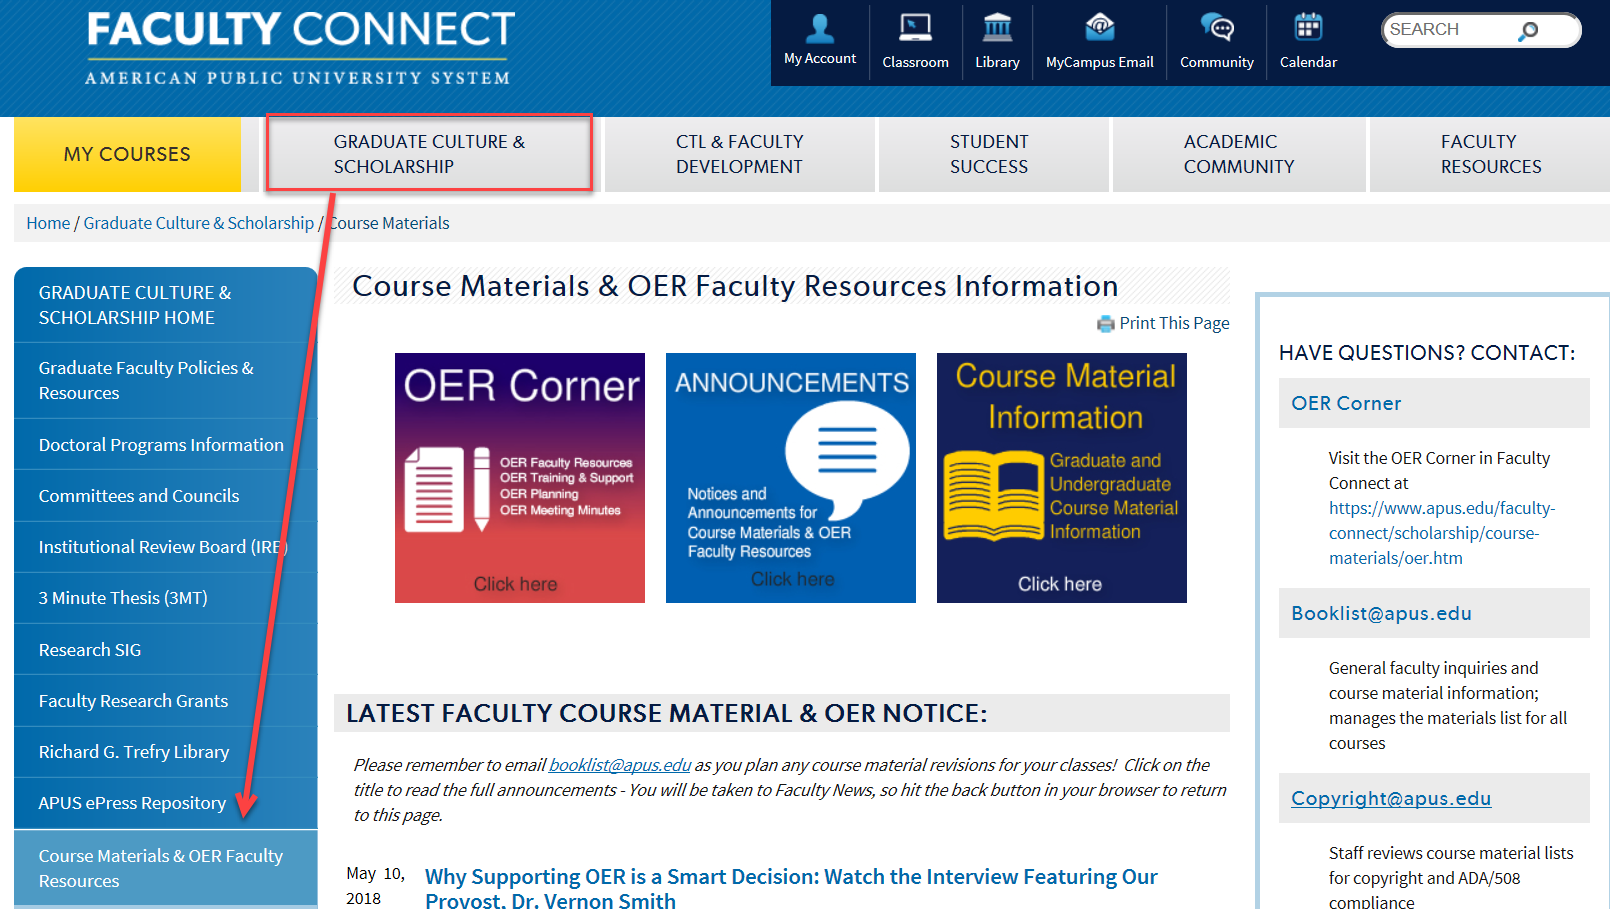 course materials information in Faculty Connect